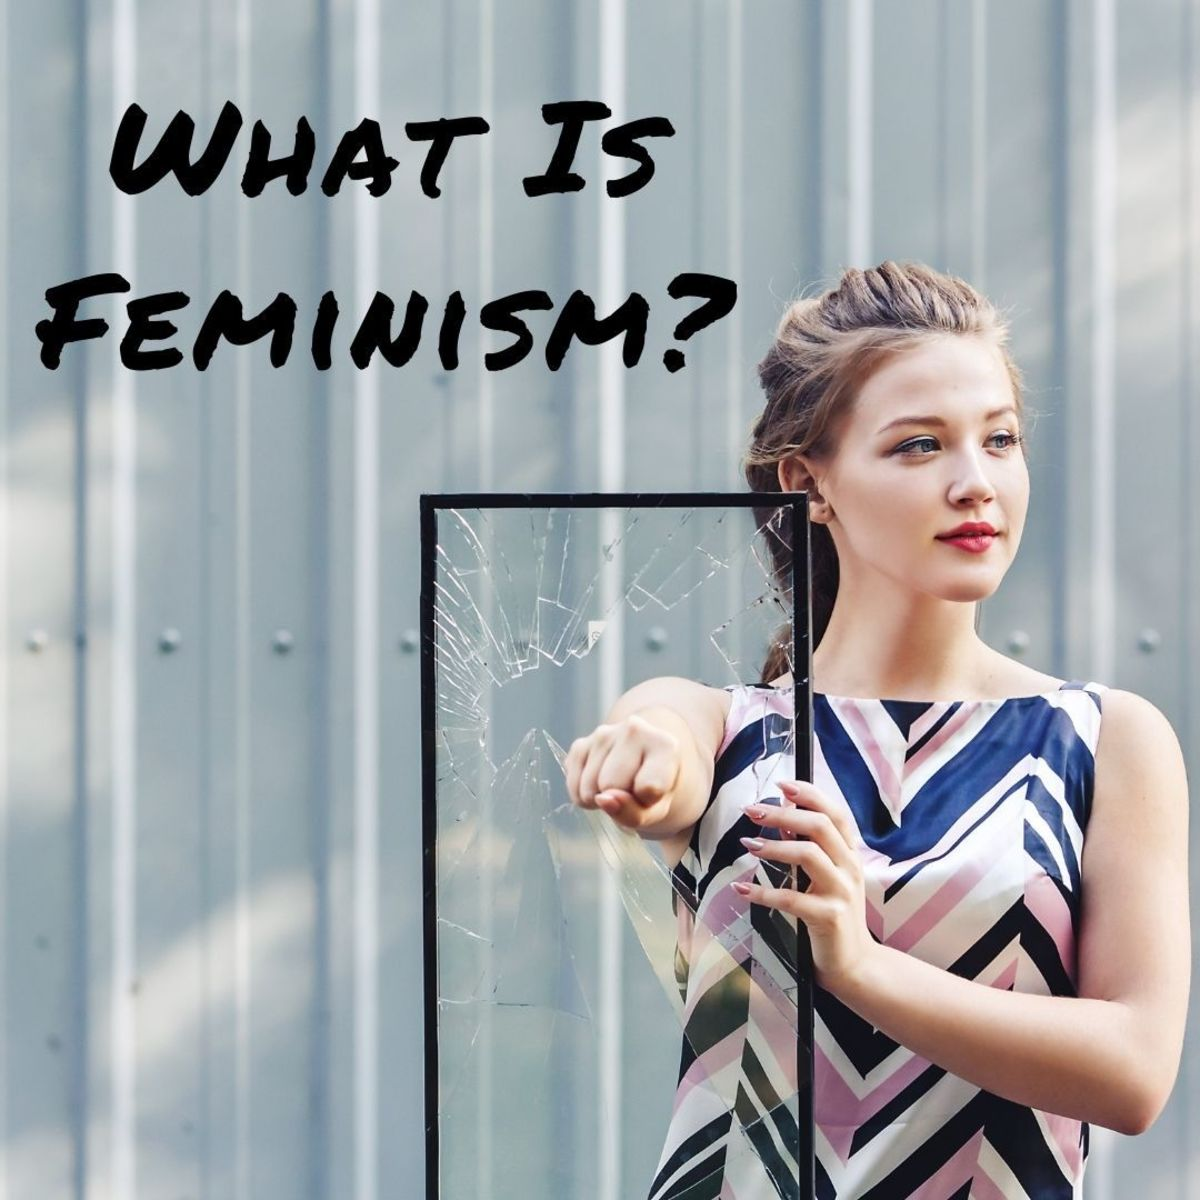 The basic foundations and principles of feminism